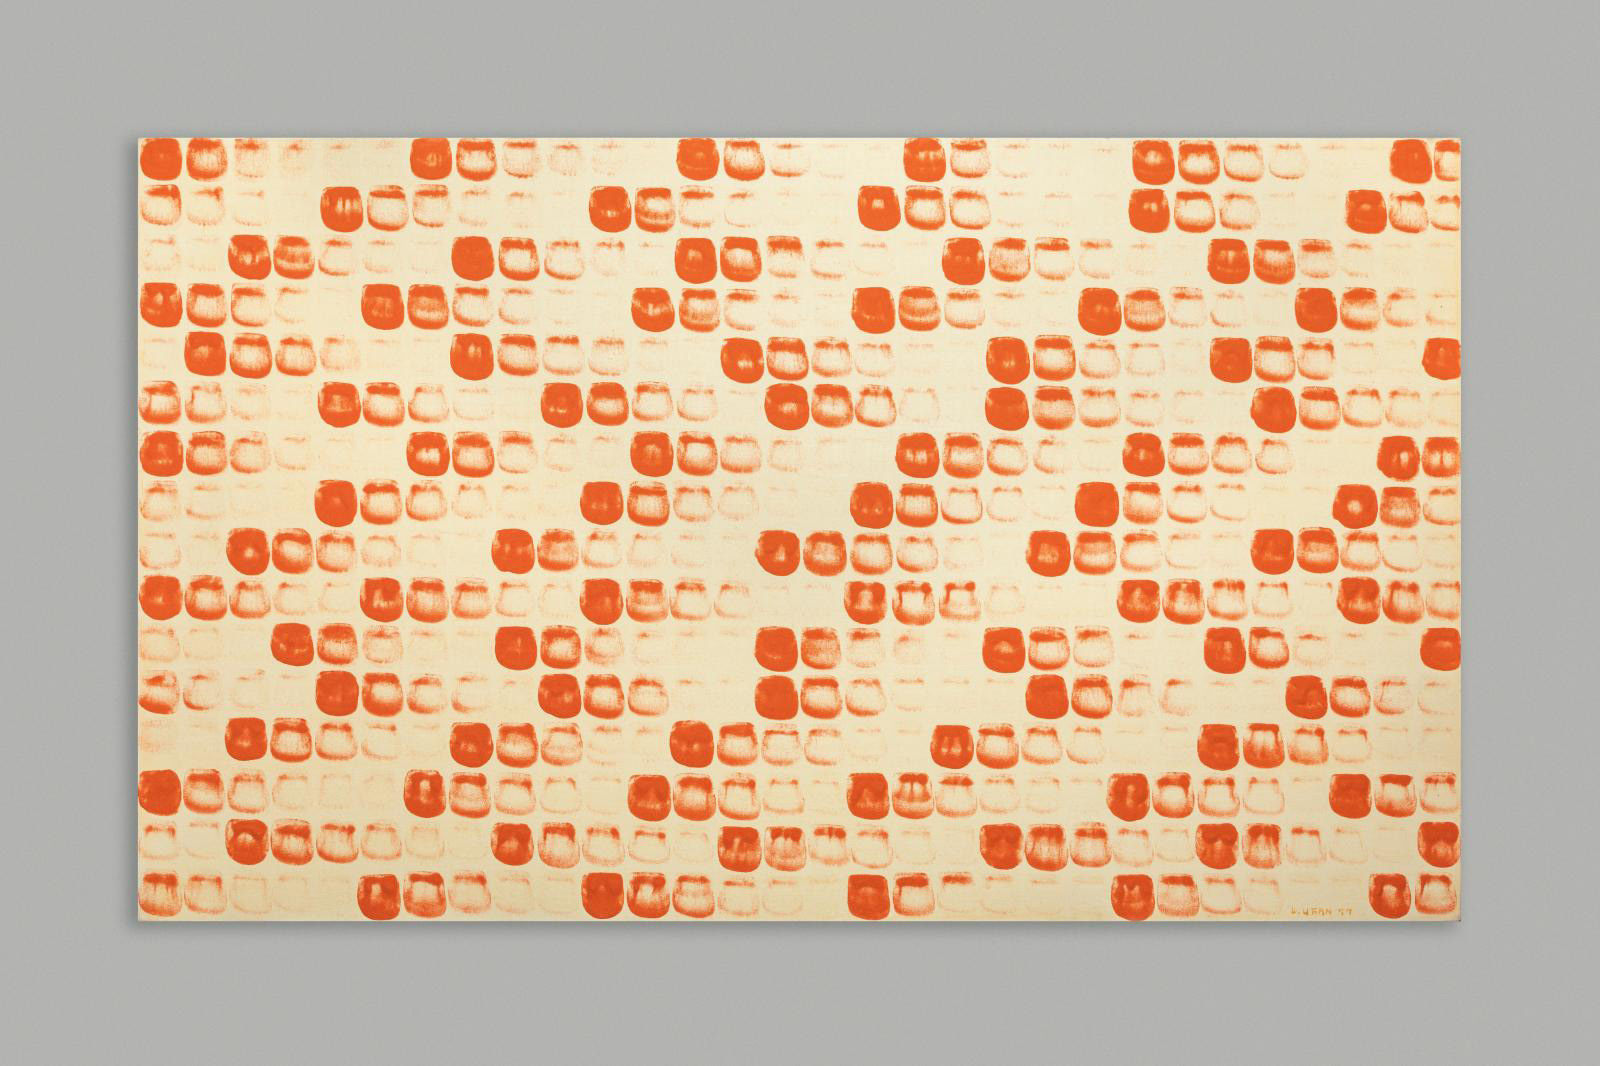 Lee Ufan (b. 1936), From Point (in Paris) n° 770122, 1977, signed lower right and dated, titled on the reverse, countersigned and located in Paris, orange pigment bound with glue, light orange primer, on canvas, 64 x 108 cm (25.1 x 42.5 in). © Adagp, Paris, 2021